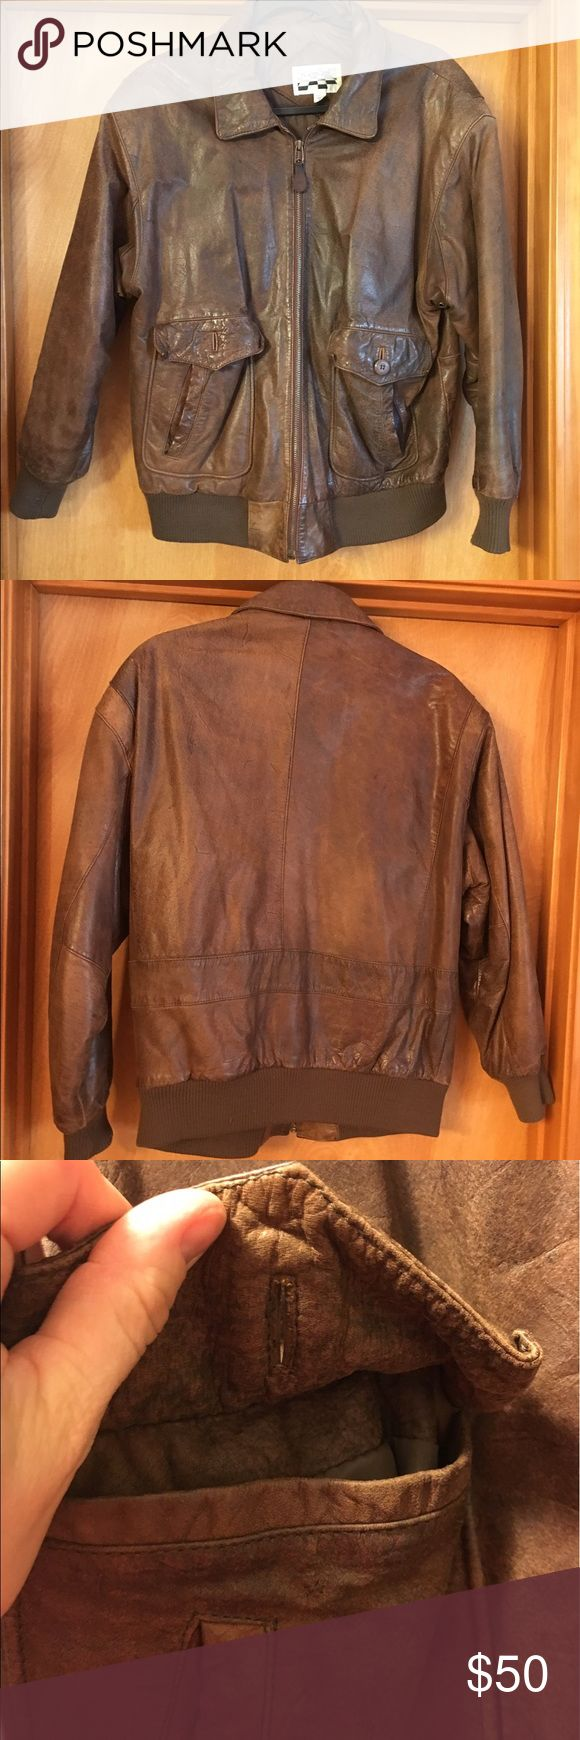 Vintage leather bomber jacket Leather bomber jacket